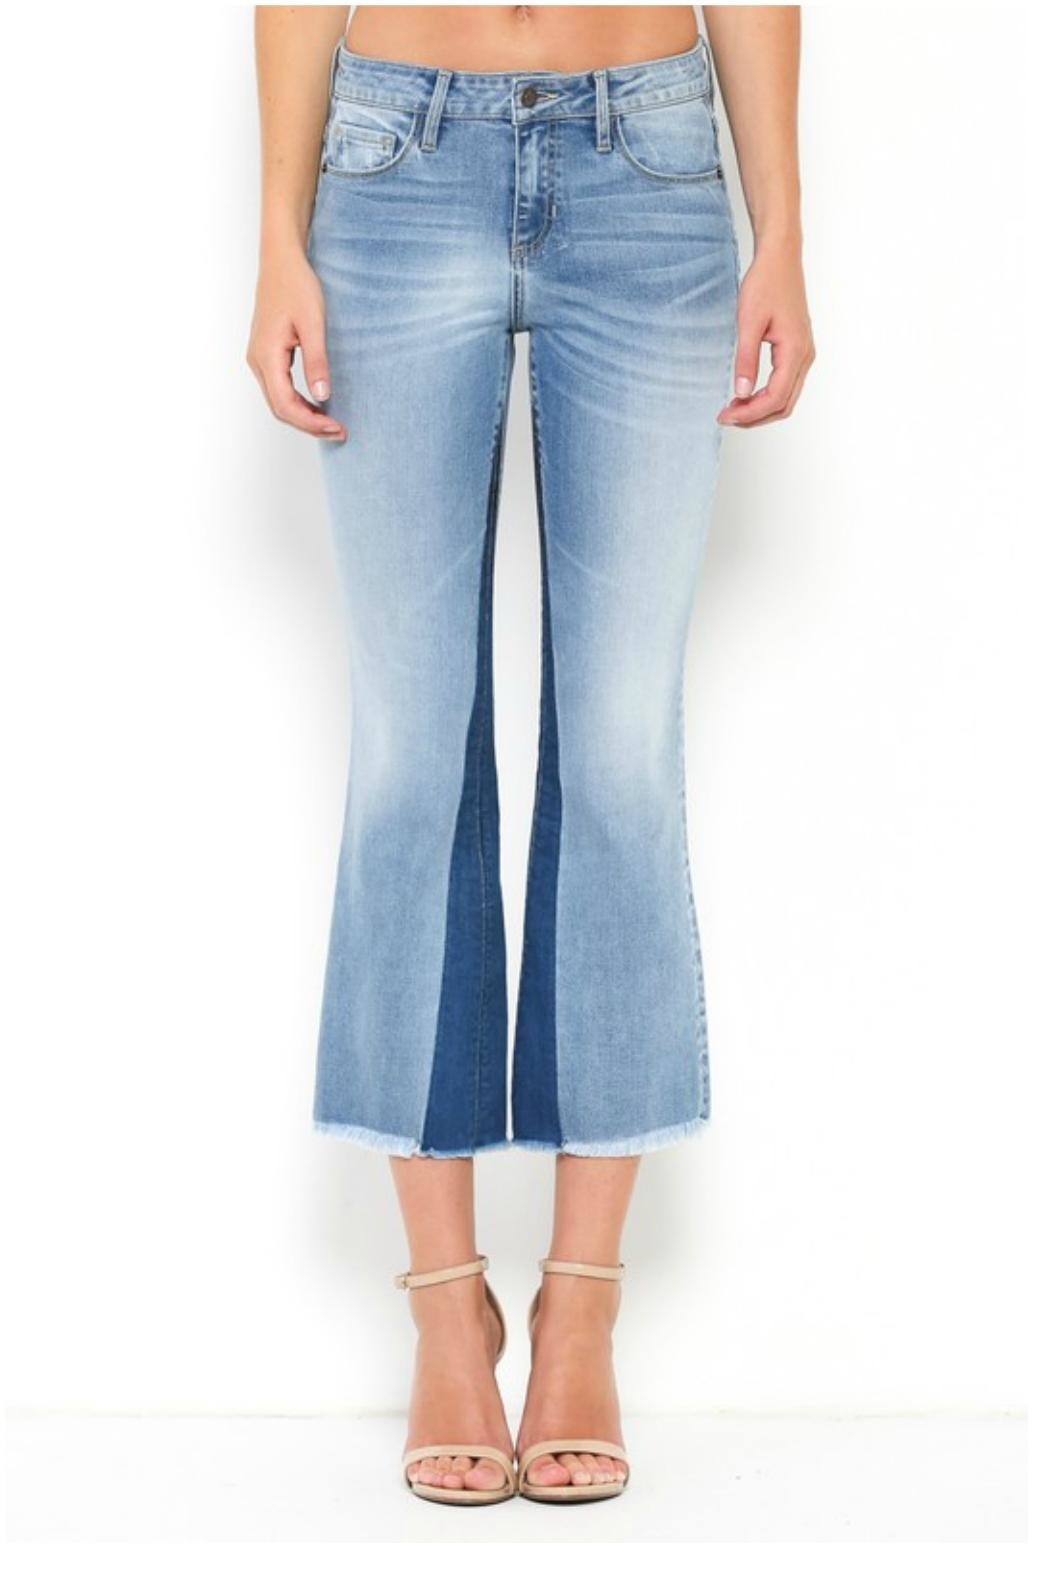 Towne 2 Tone Jean - Front Cropped Image